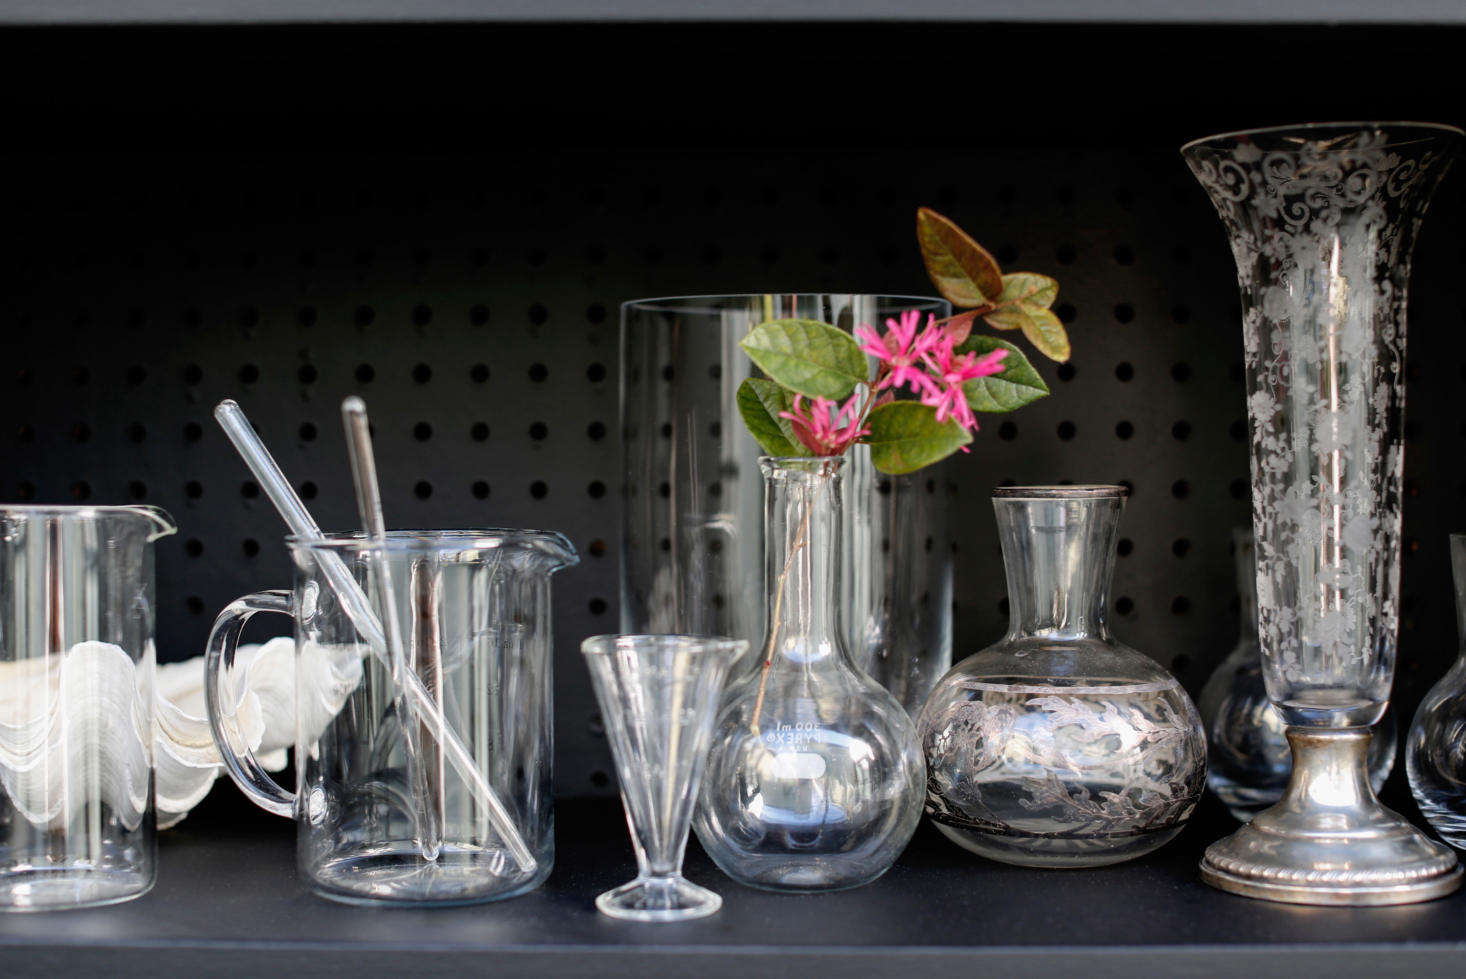 A collection of vintage glassware looks lovely against the matte black backdrop.